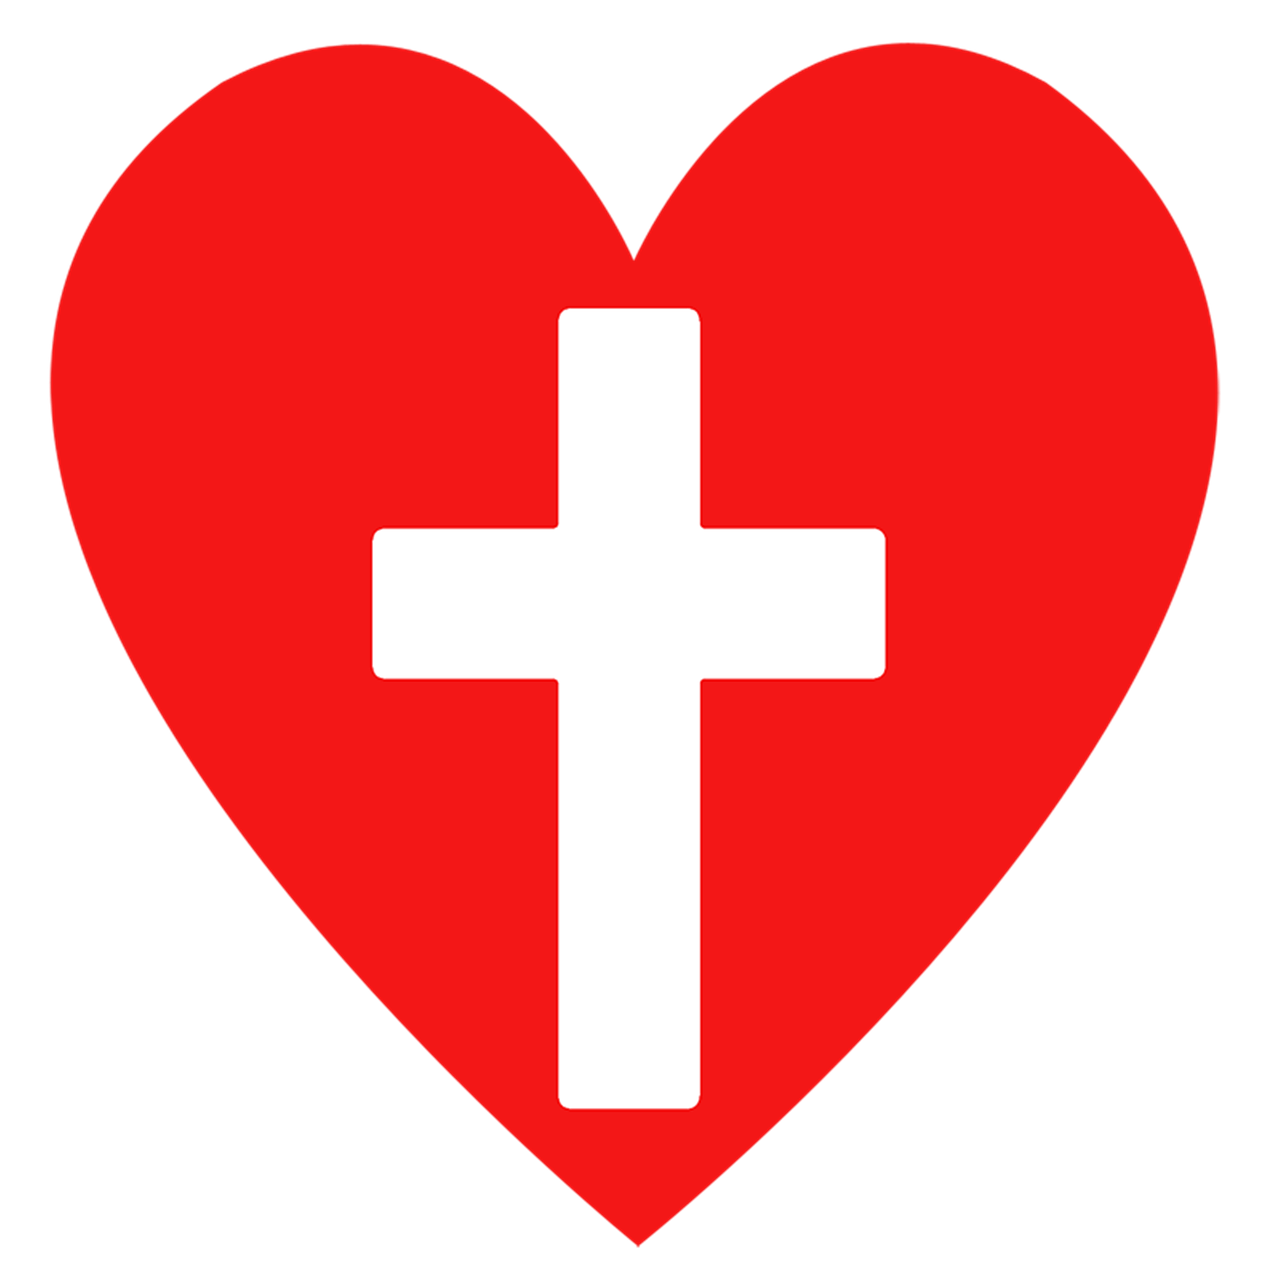 Christian heart clipart picture library Is Christian Love Different? | Christian Questions Bible Podcast picture library